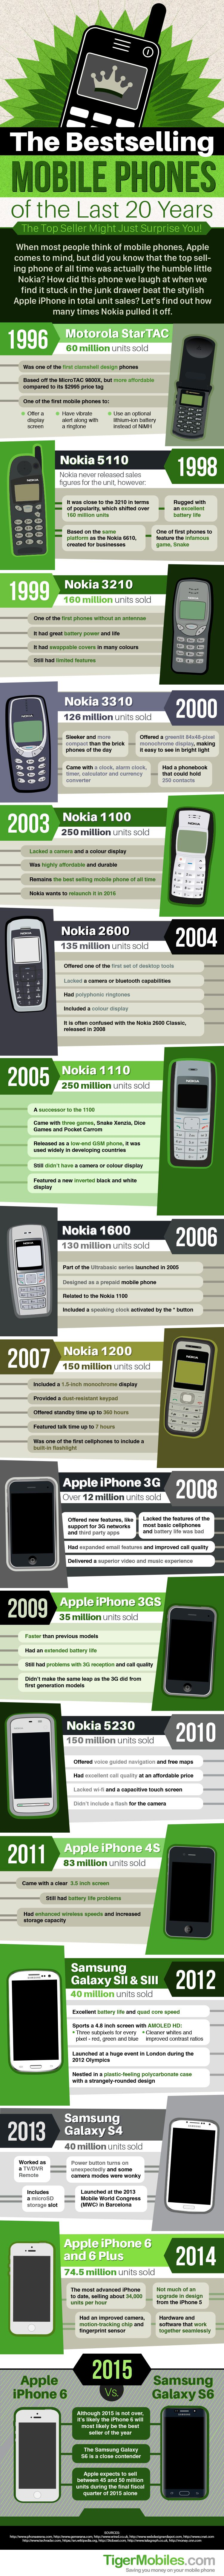 The Bestselling Mobile Phones of the Last 20 Years